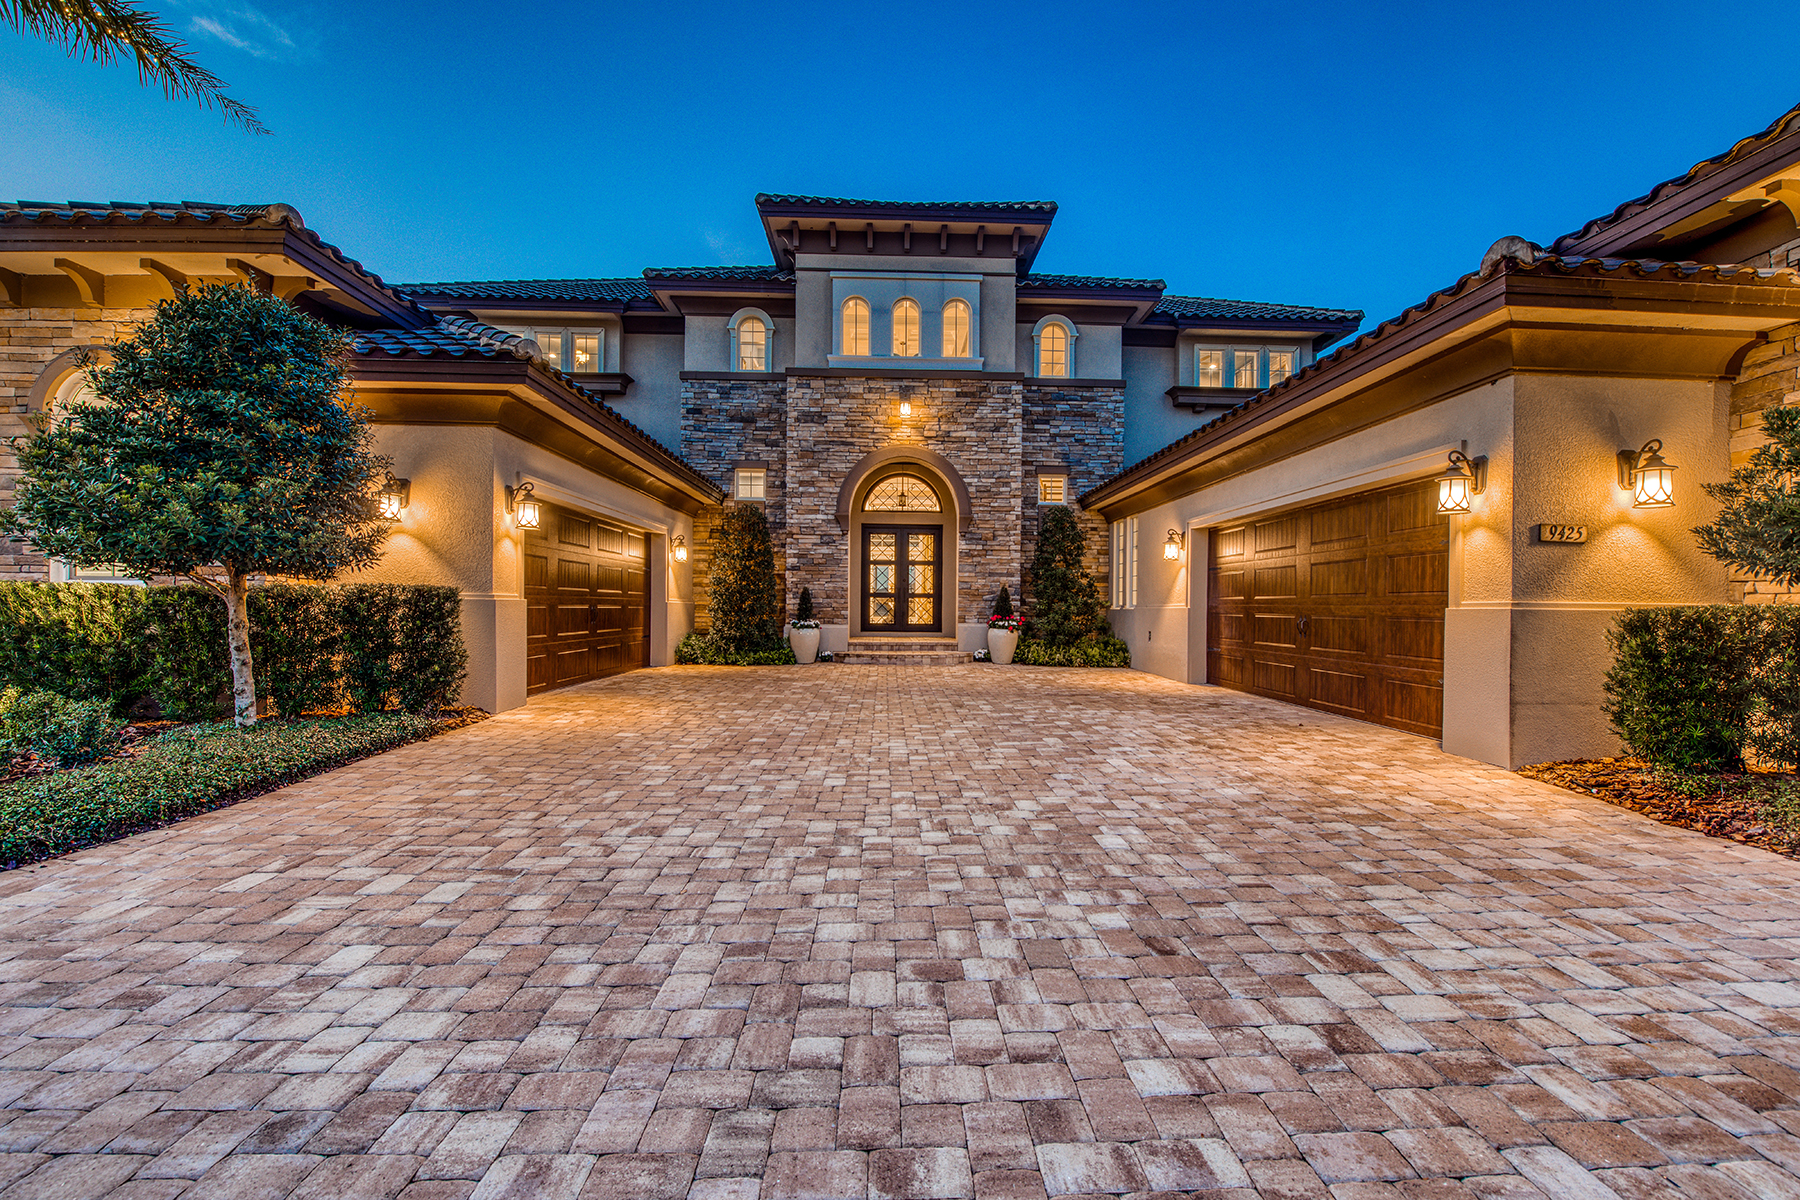 Single Family Homes for Sale at THE CONCESSION 19425 Ganton Ave Lakewood Ranch, Florida 34202 United States